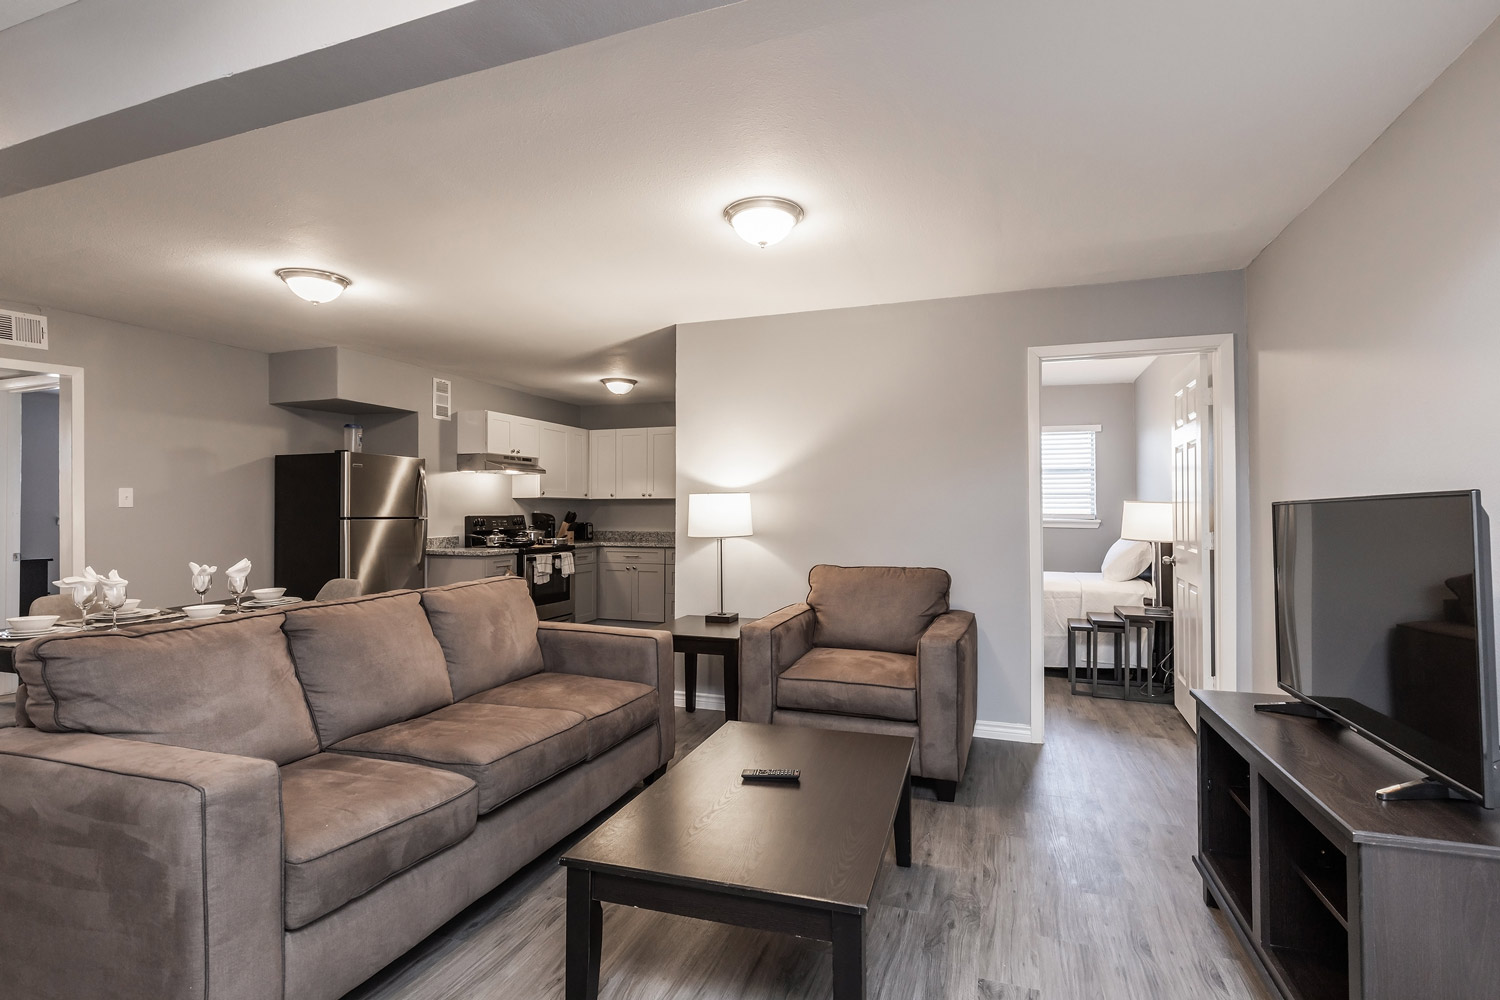 Remodeled Apartments at The Five Points at Texas Apartments in Texas City, Texas